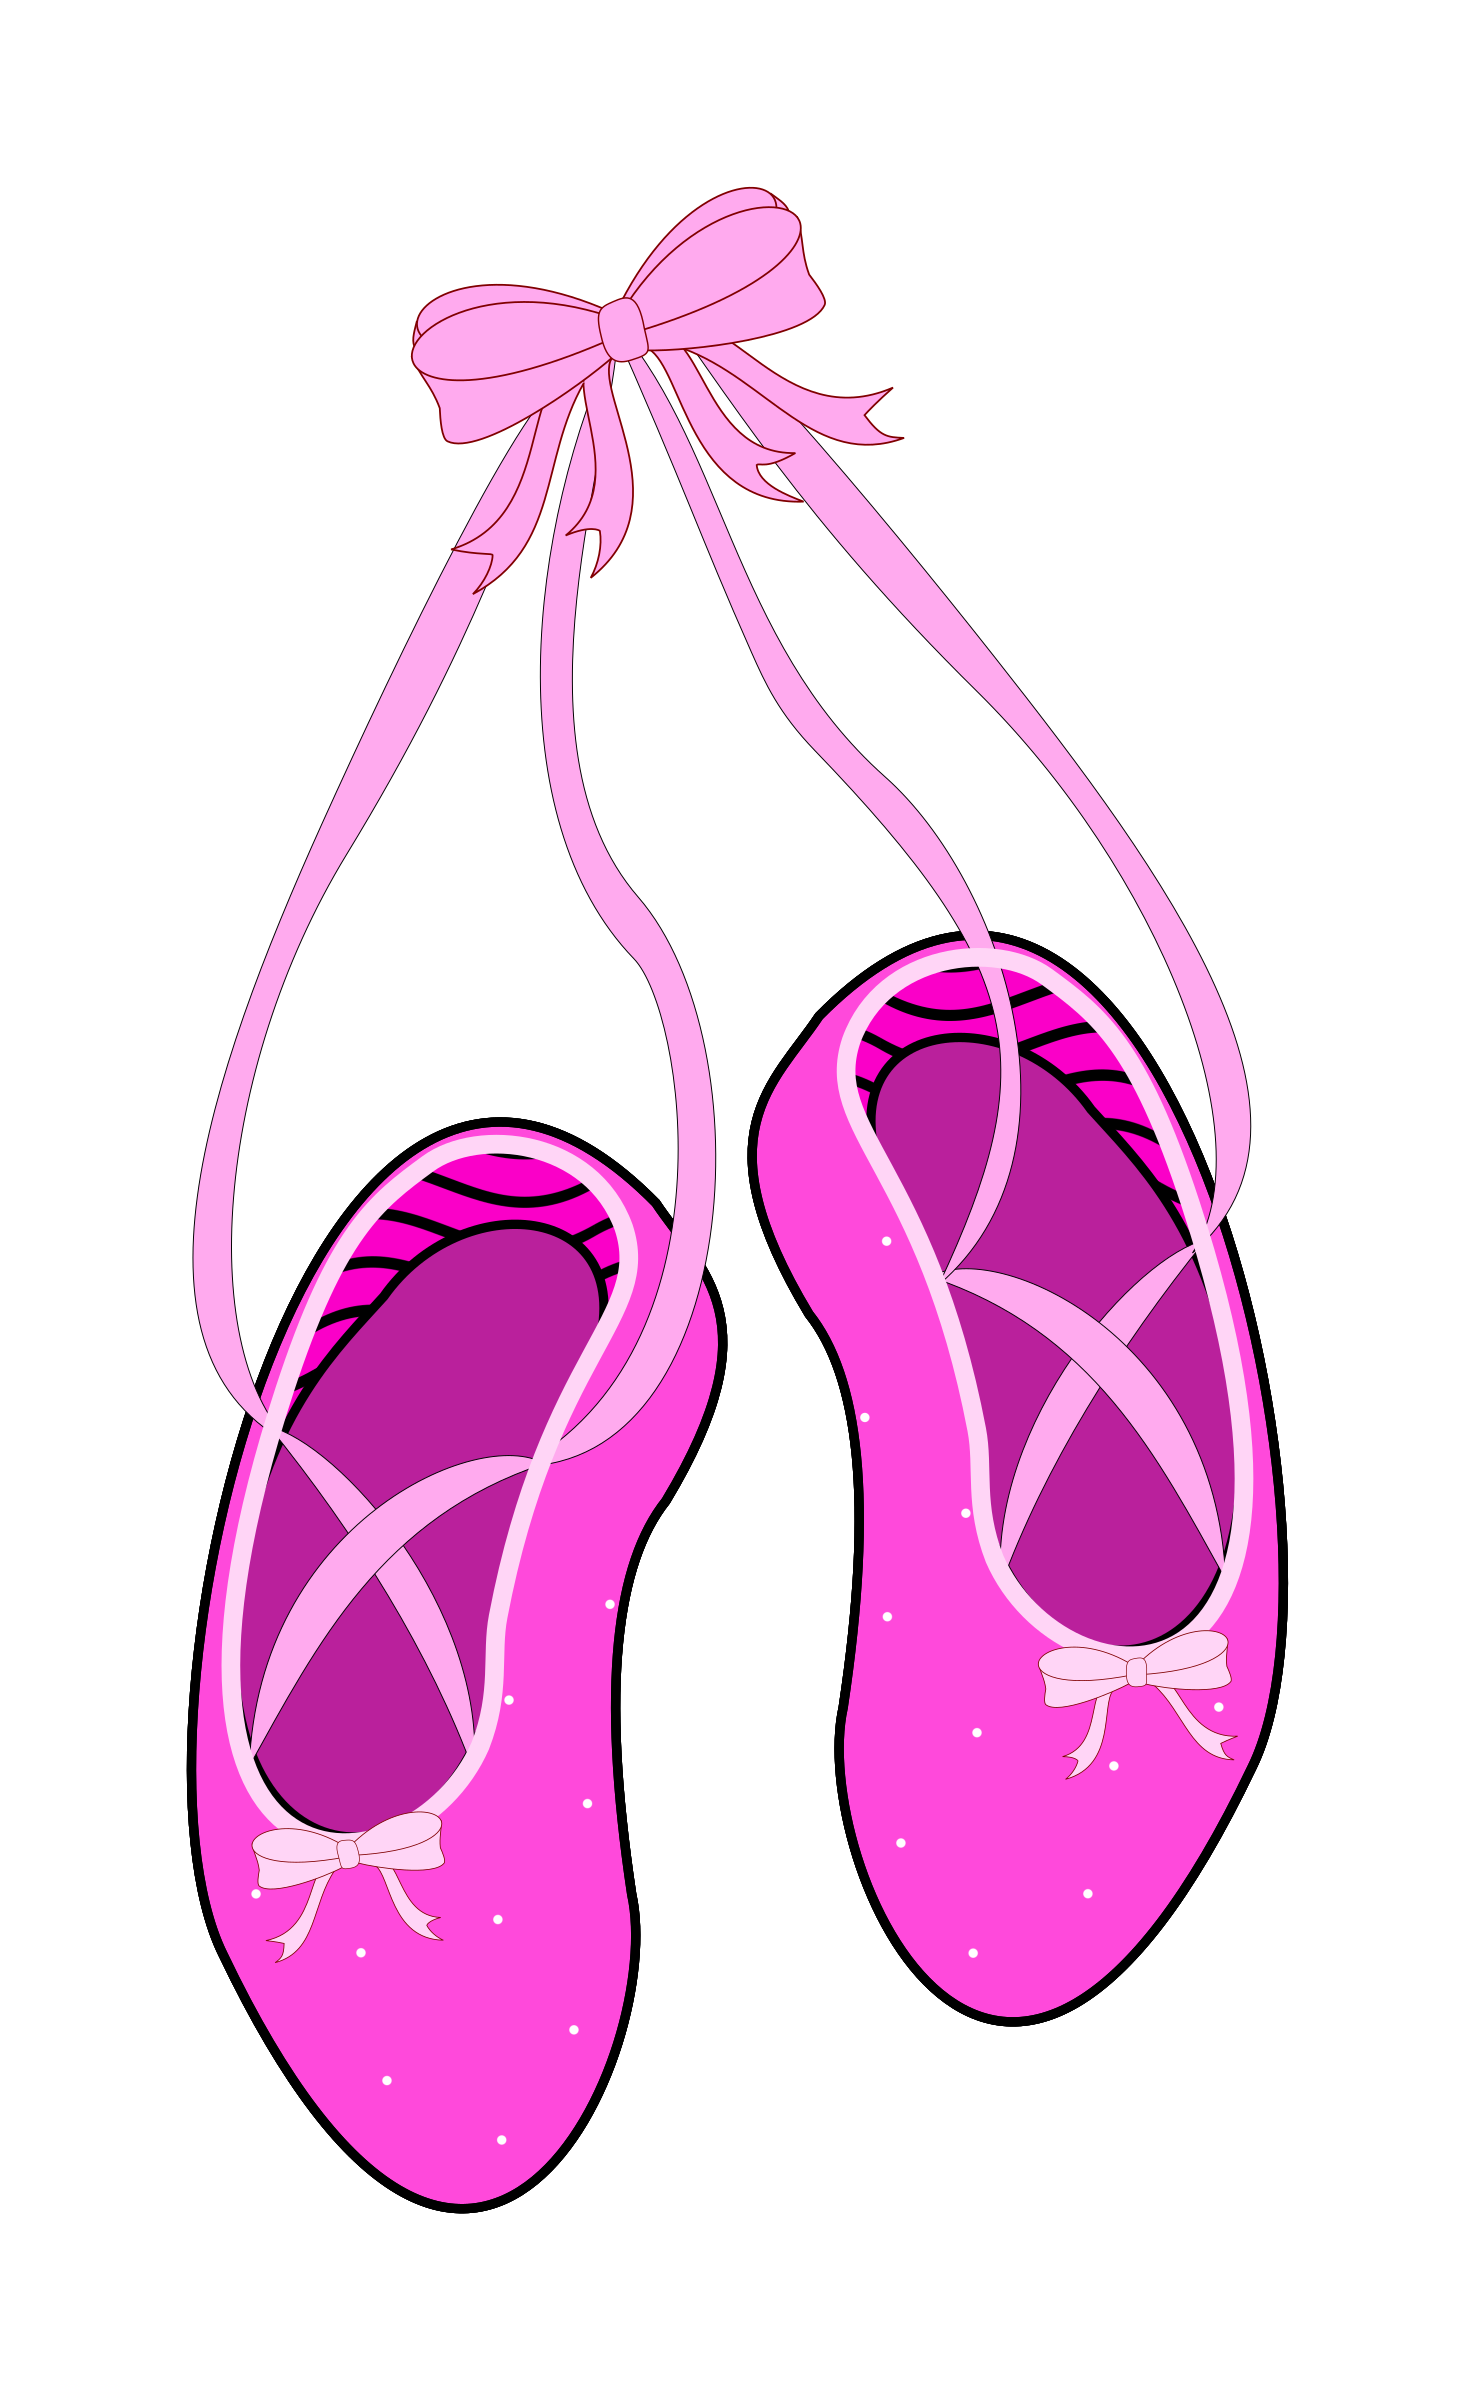 Ballet Shoes Clip Art - Clipa